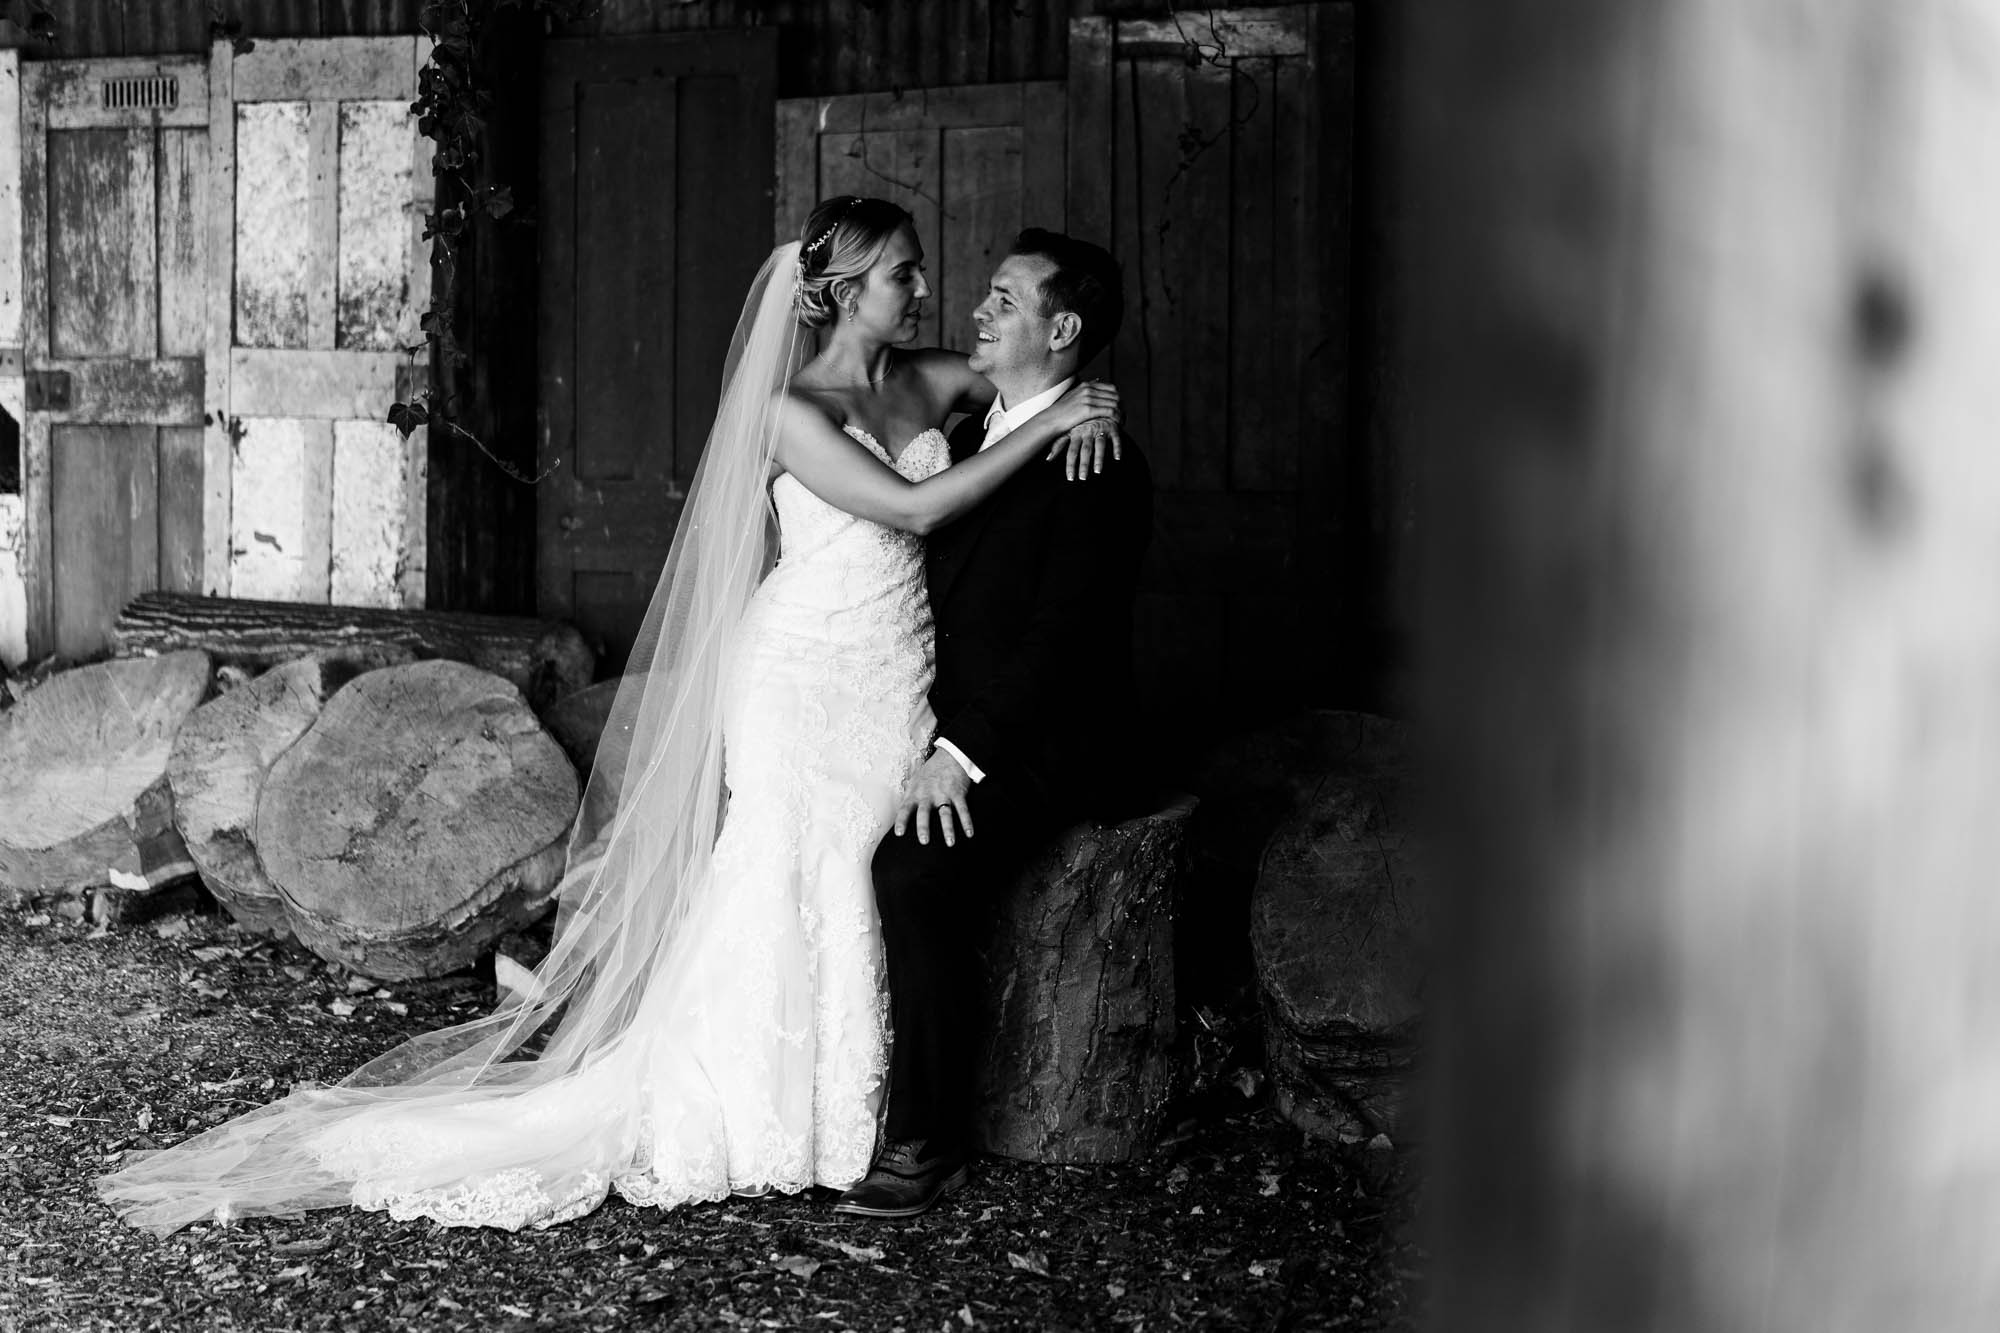 wedding-at-the-barns-at-hunsbury-hill-51